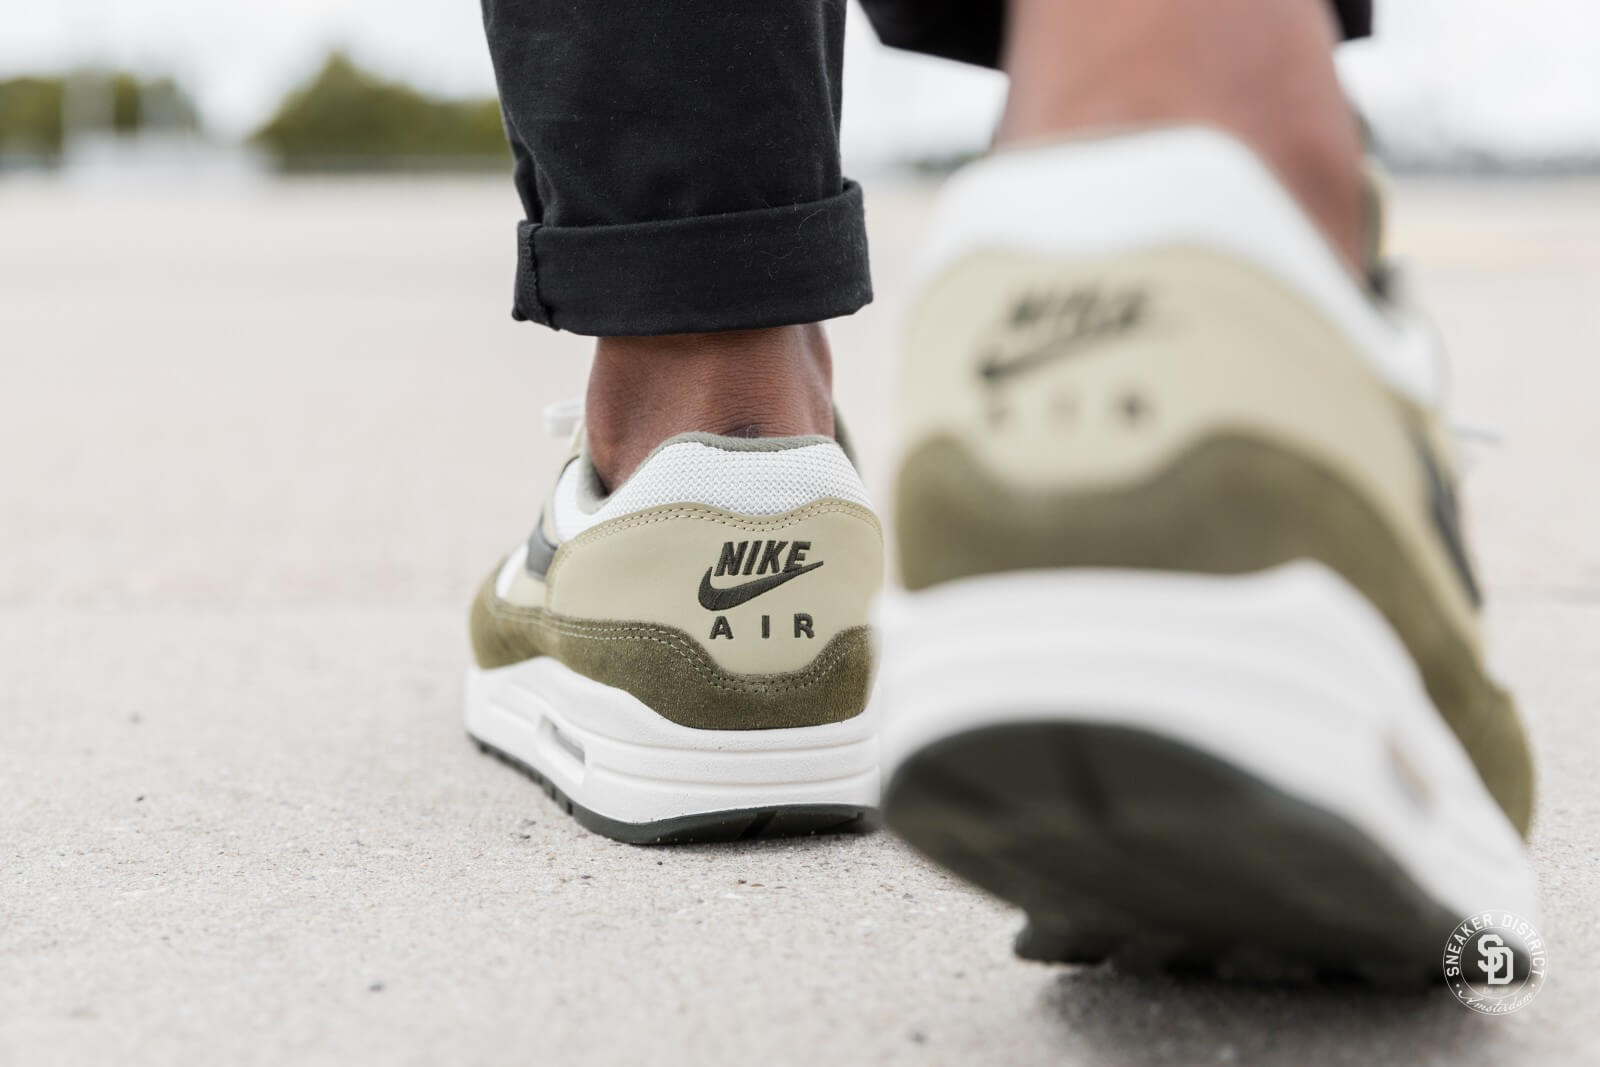 Nike Air Max 1 Medium Olive/Sequoia-Neutral Olive - AH8145-201